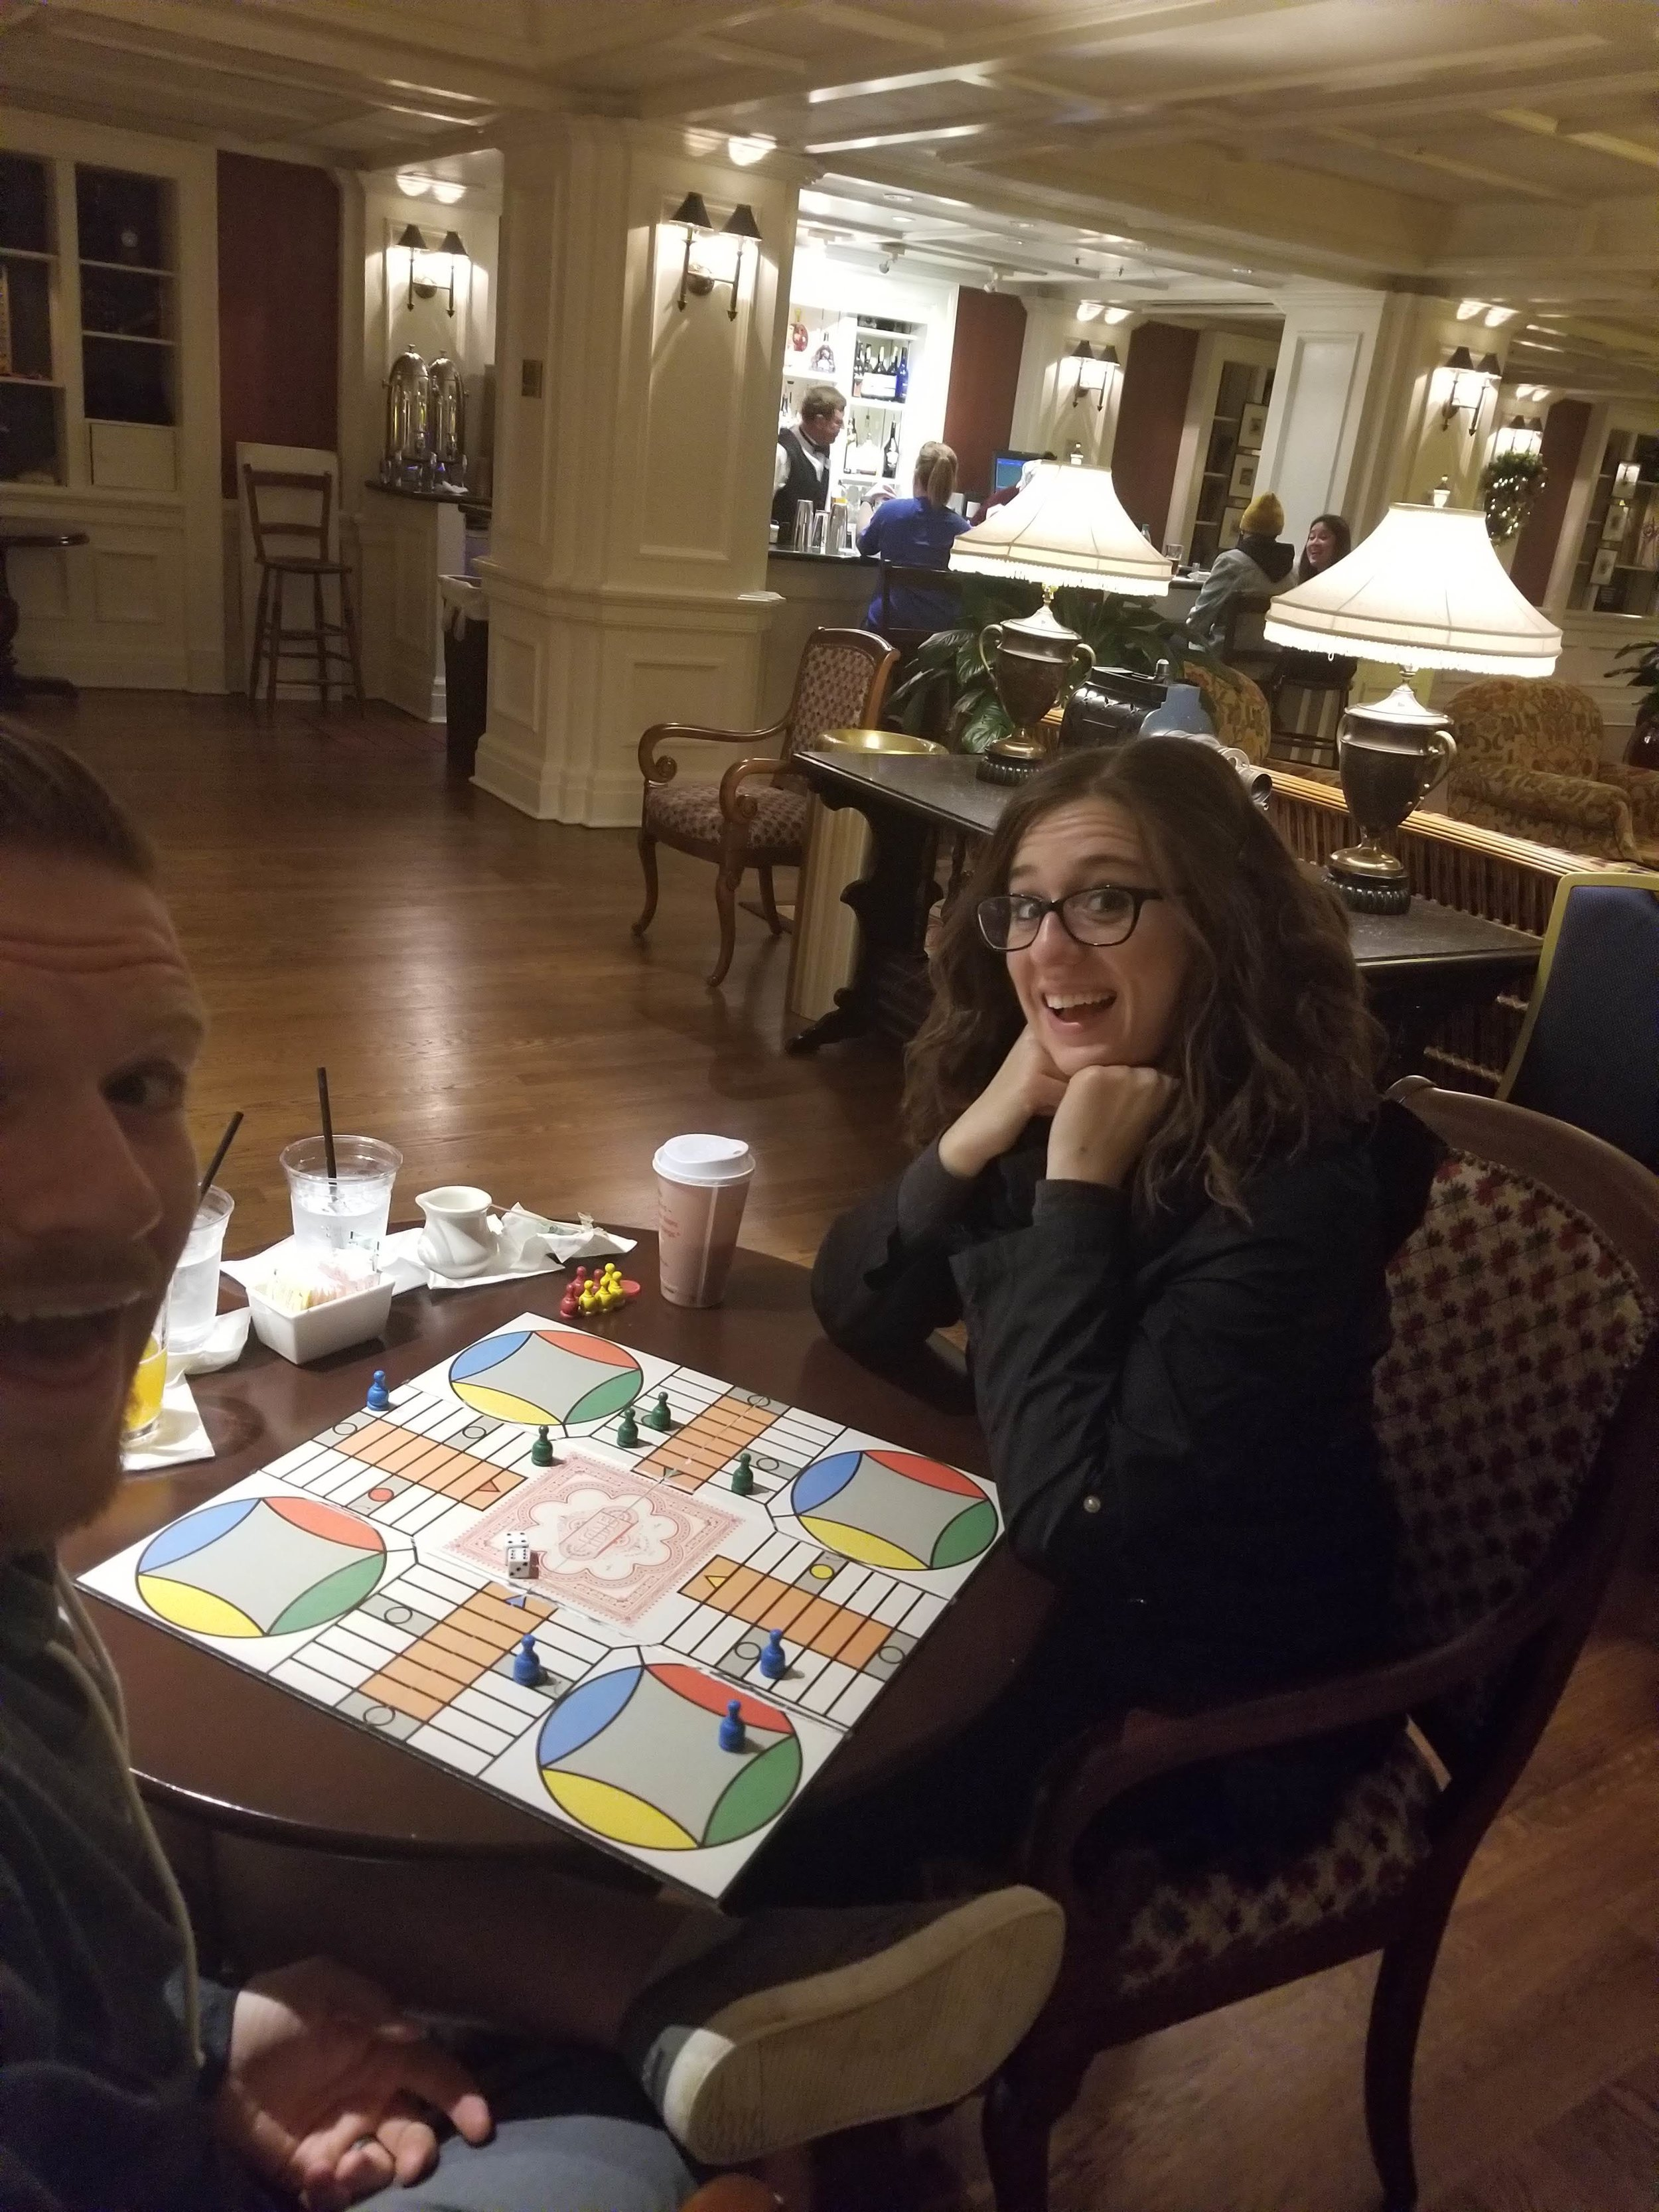 Us playing Parcheesi at the Boardwalk during our scheduled downtime! (which cost us nothing except drinks!)